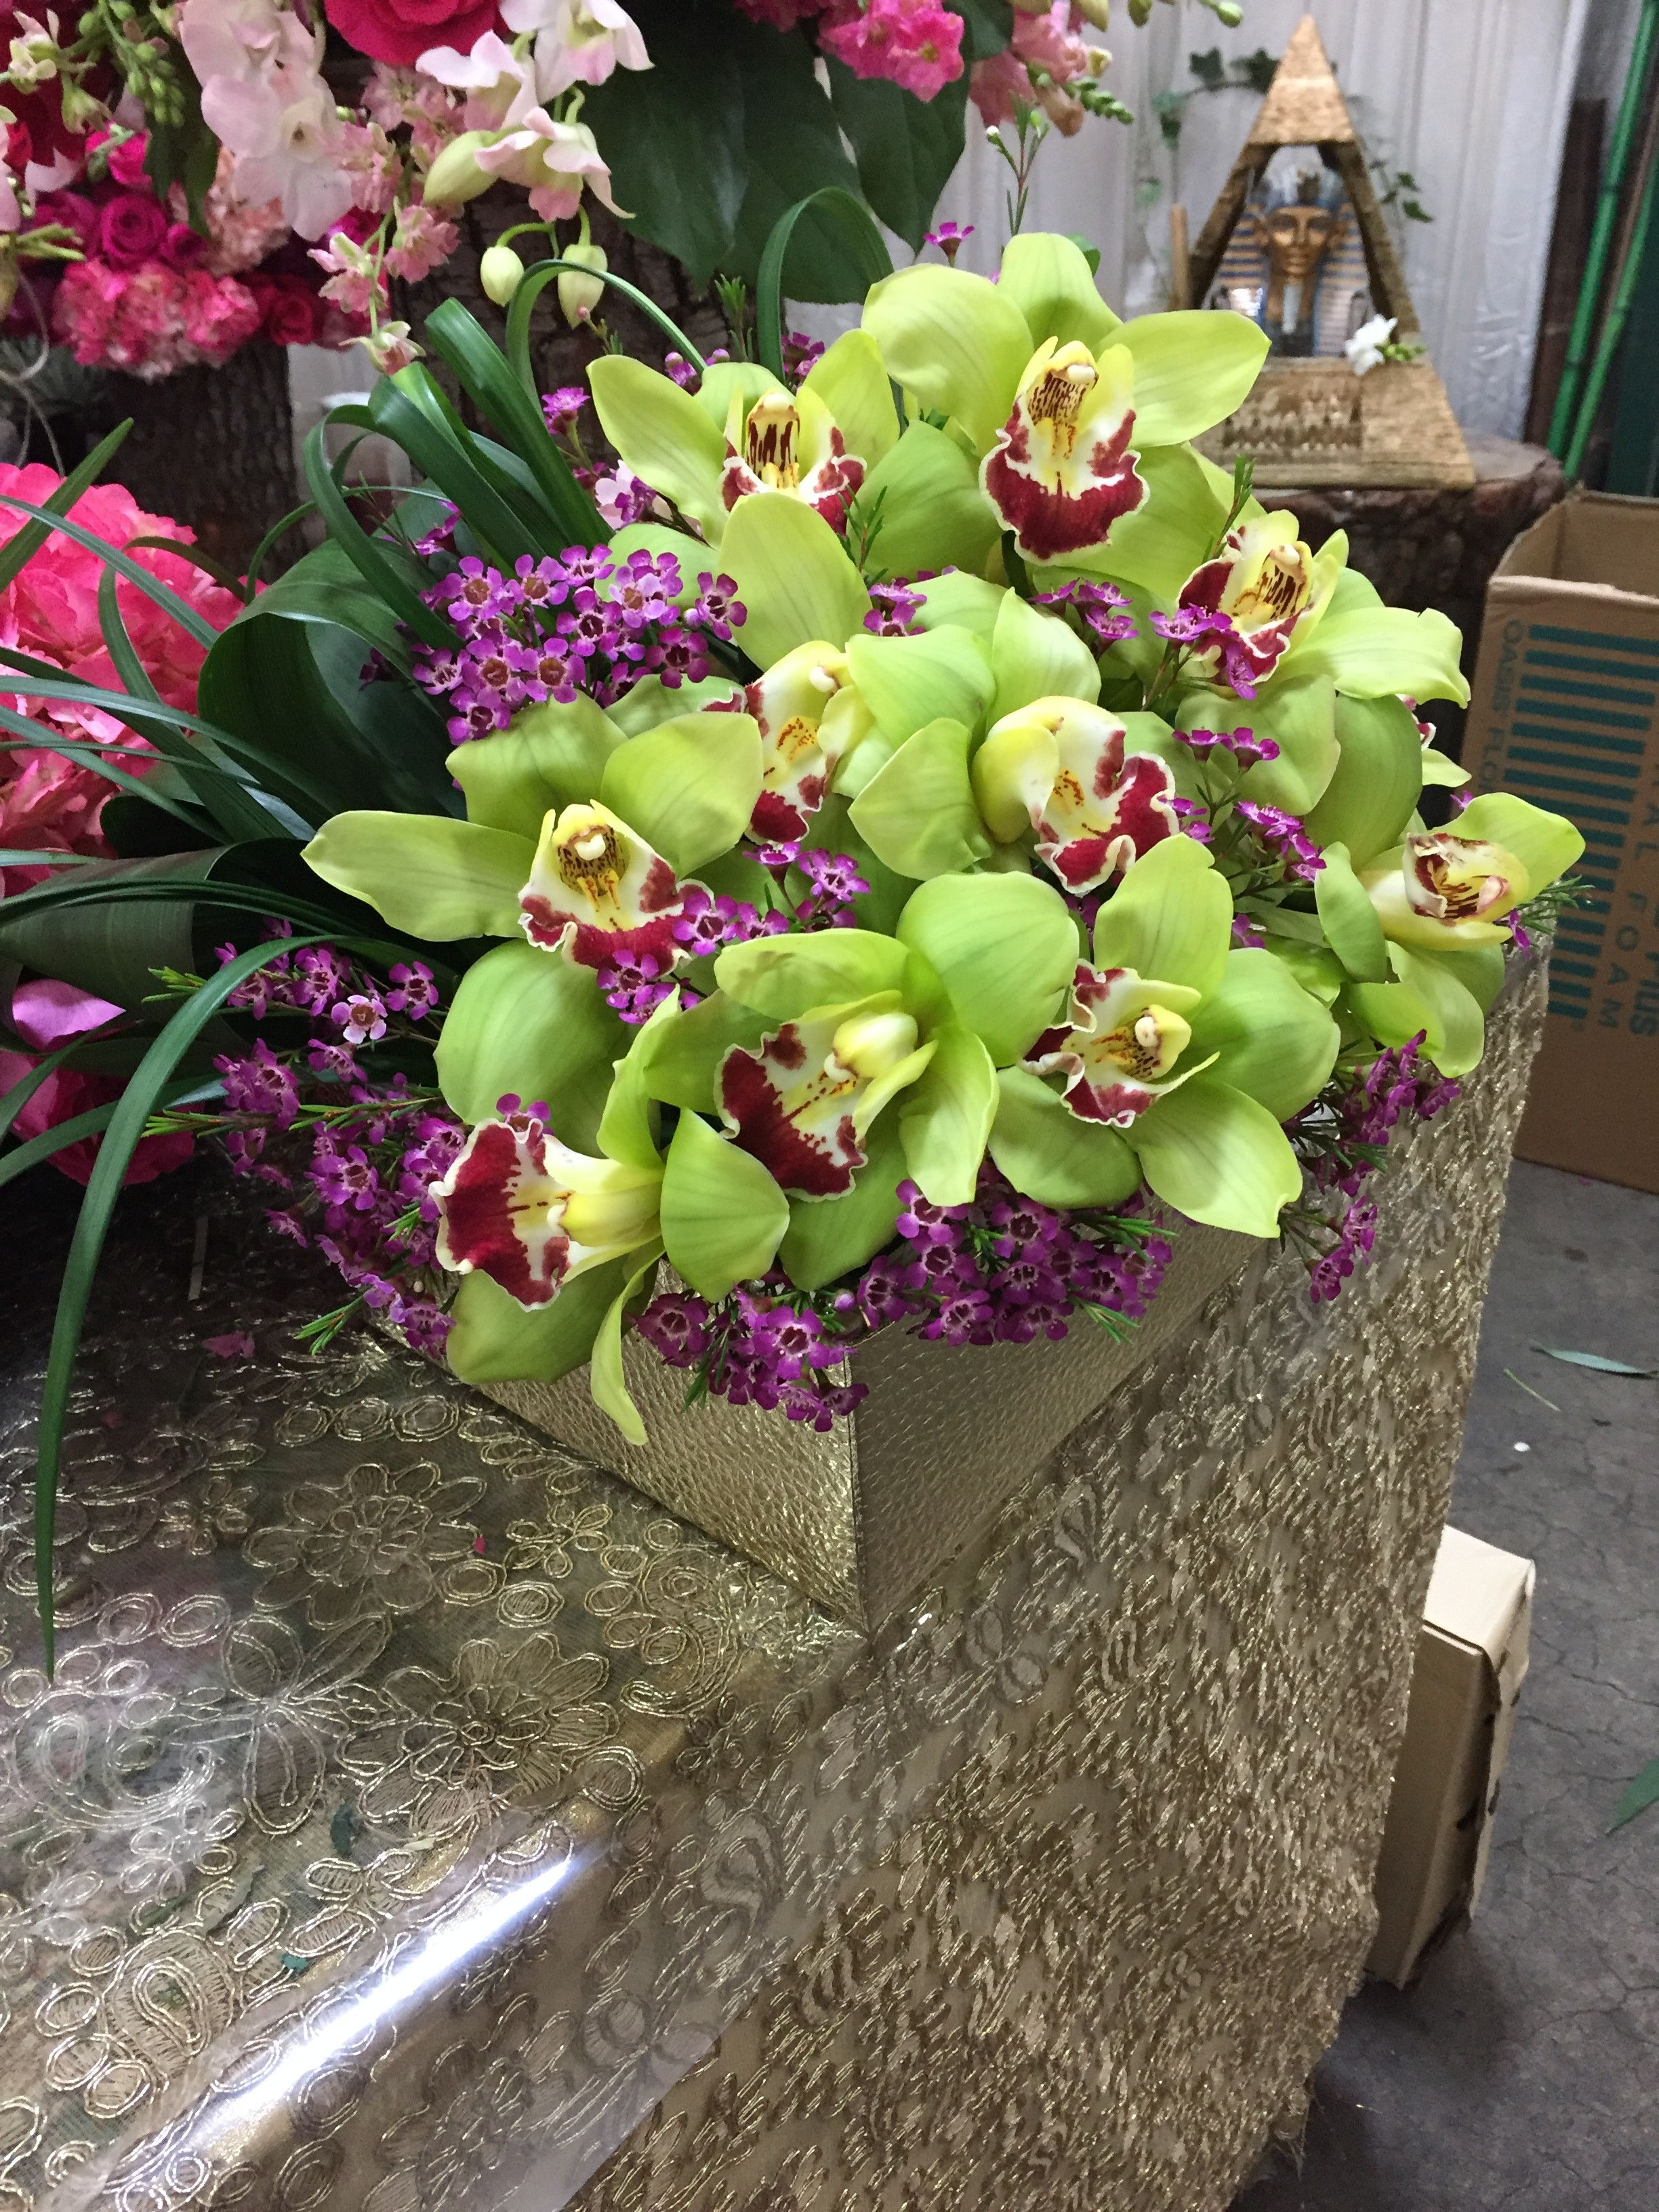 Pin by SusieQ on Floral Design Flower delivery, Same day